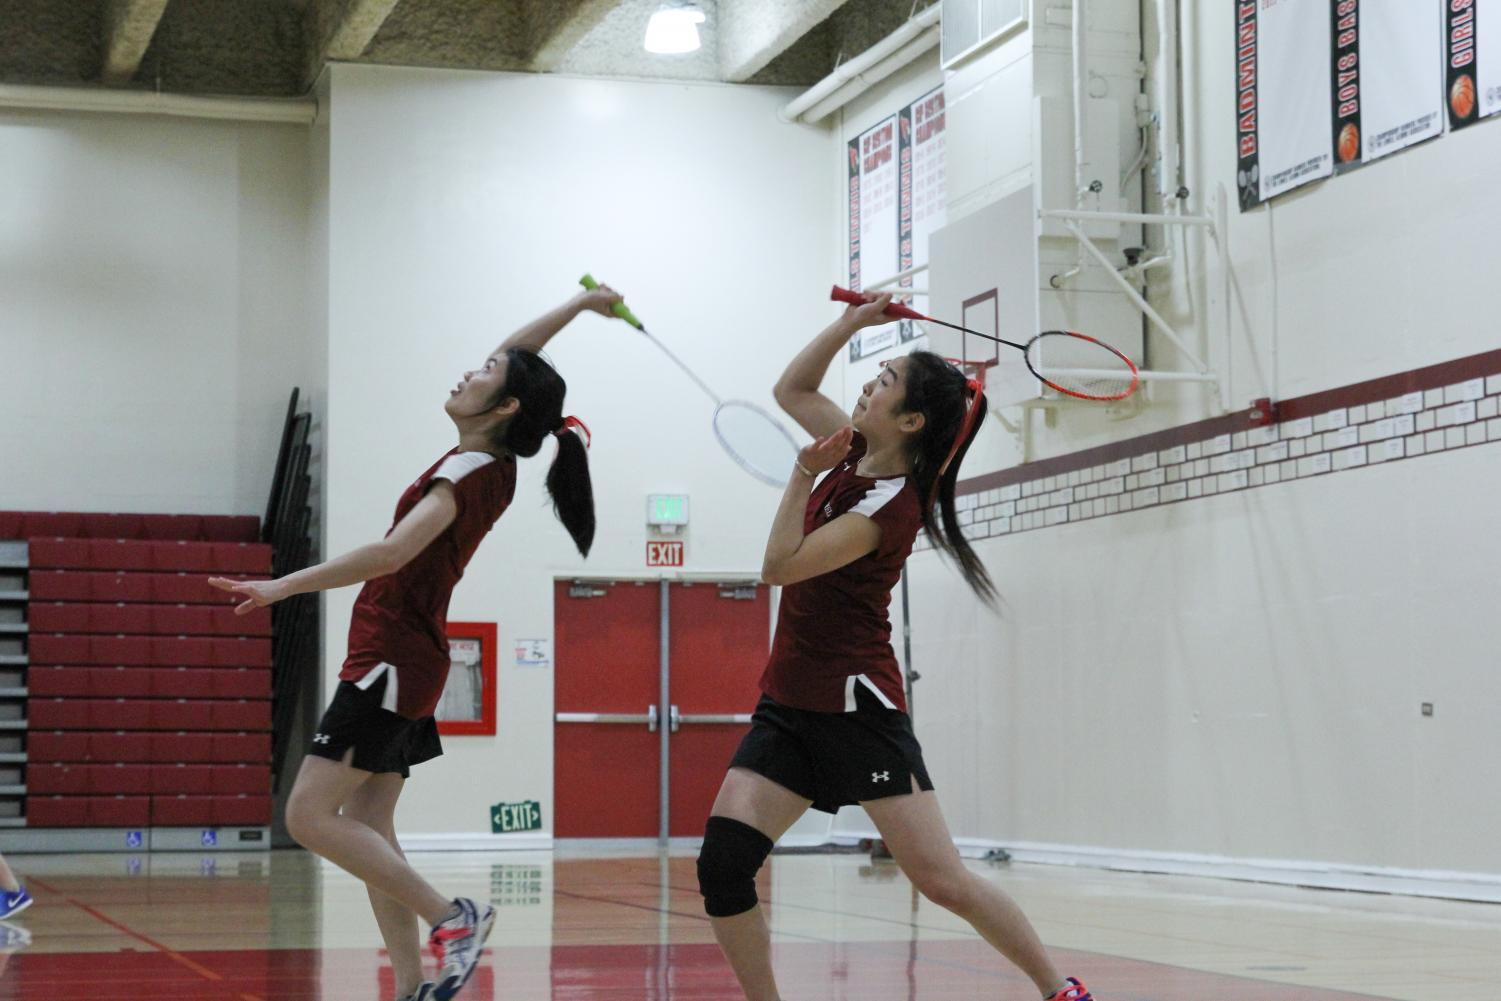 Senior Joanna Feng (right) and Elaine Huang (left) demonstrate strong partnership at the match against the Galileo Lions on Mar. 12 at home.